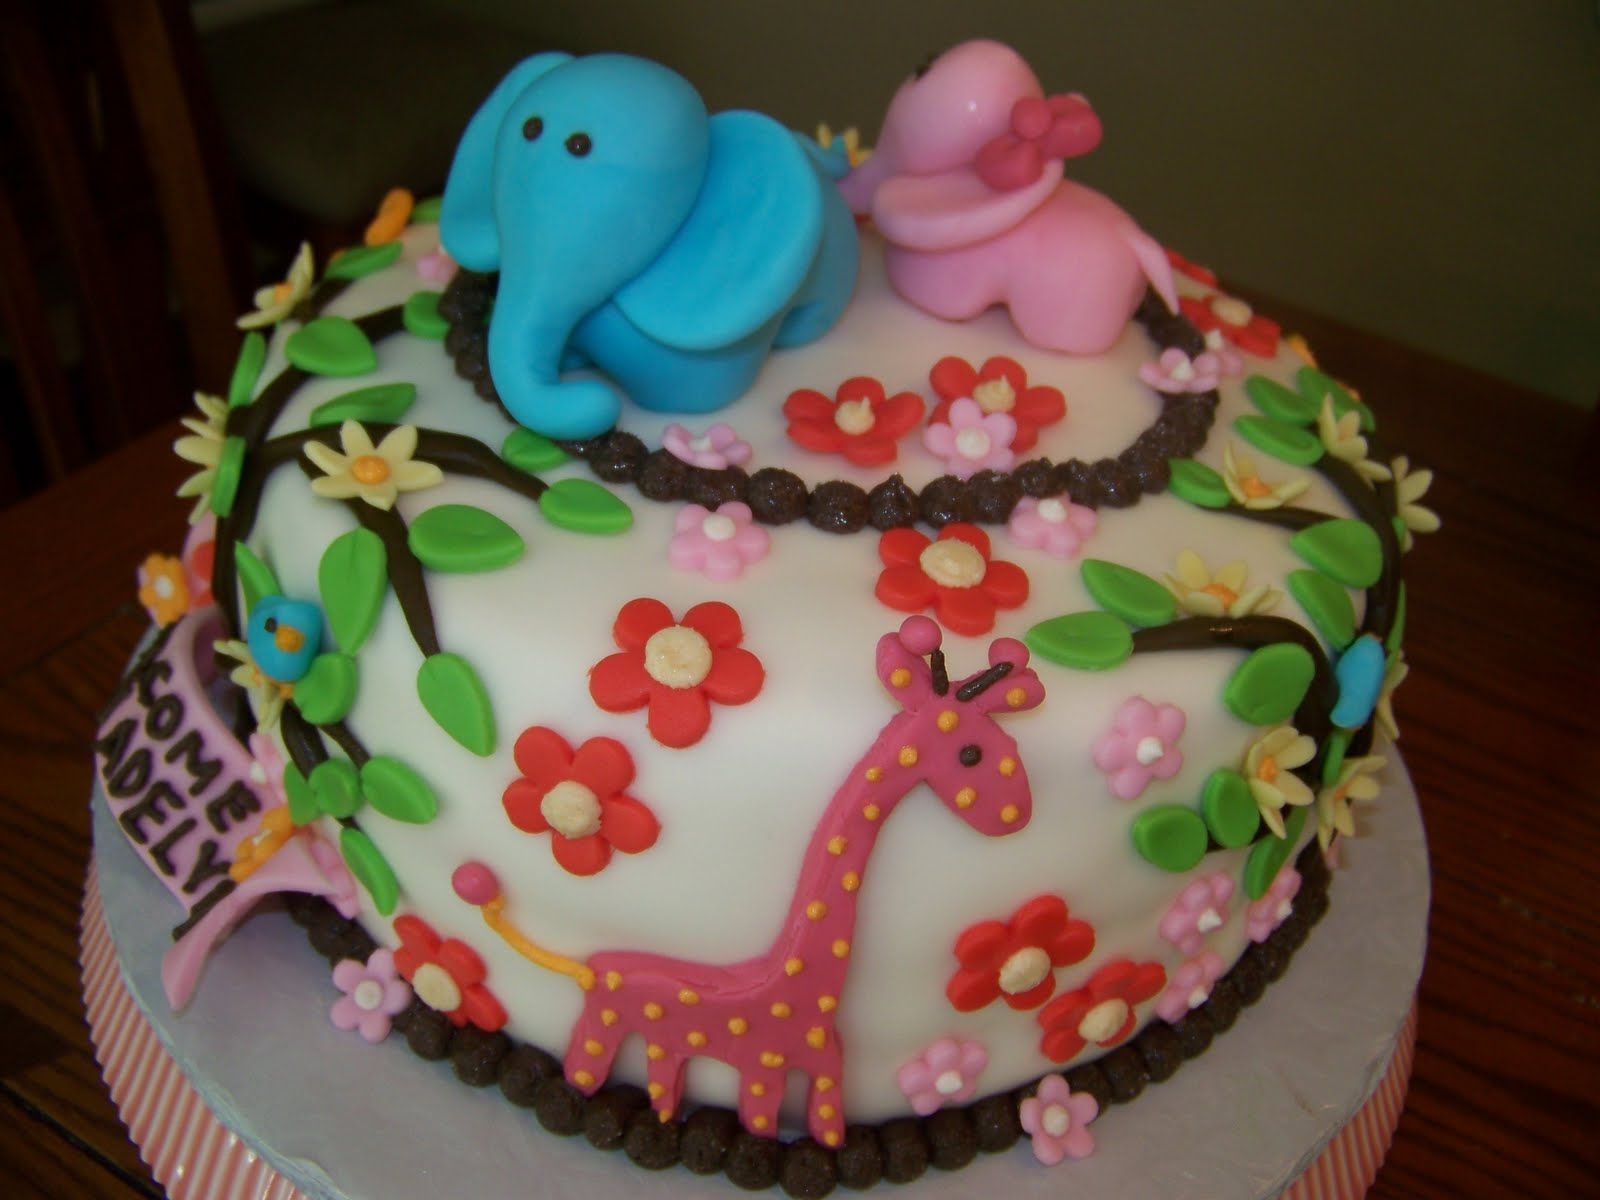 plumeria cake studio jungle baby shower cake